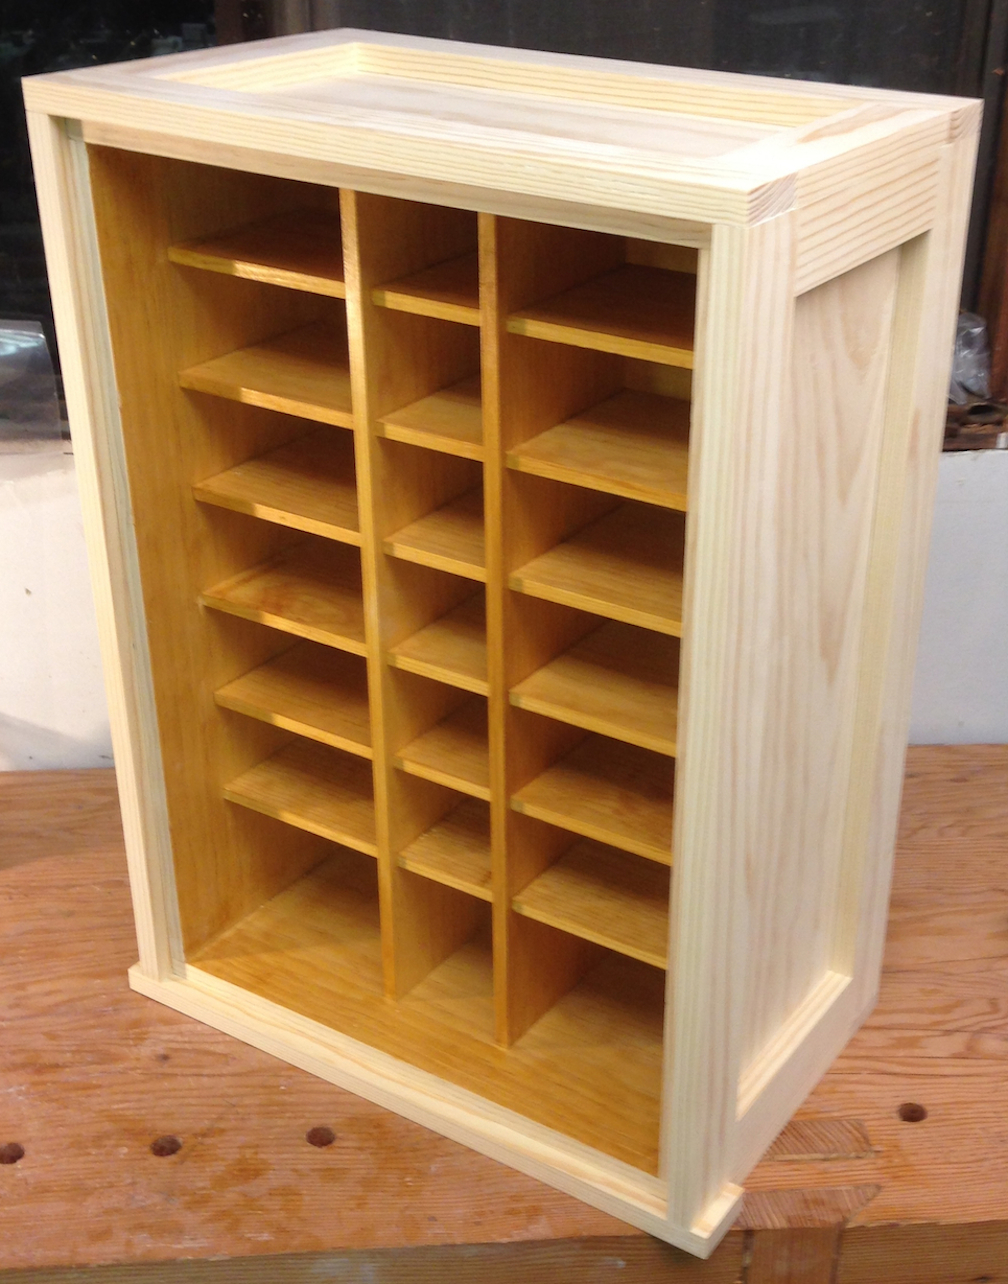 Roy Underhill's Nail Cabinet, Part 3 | McGlynn on Making